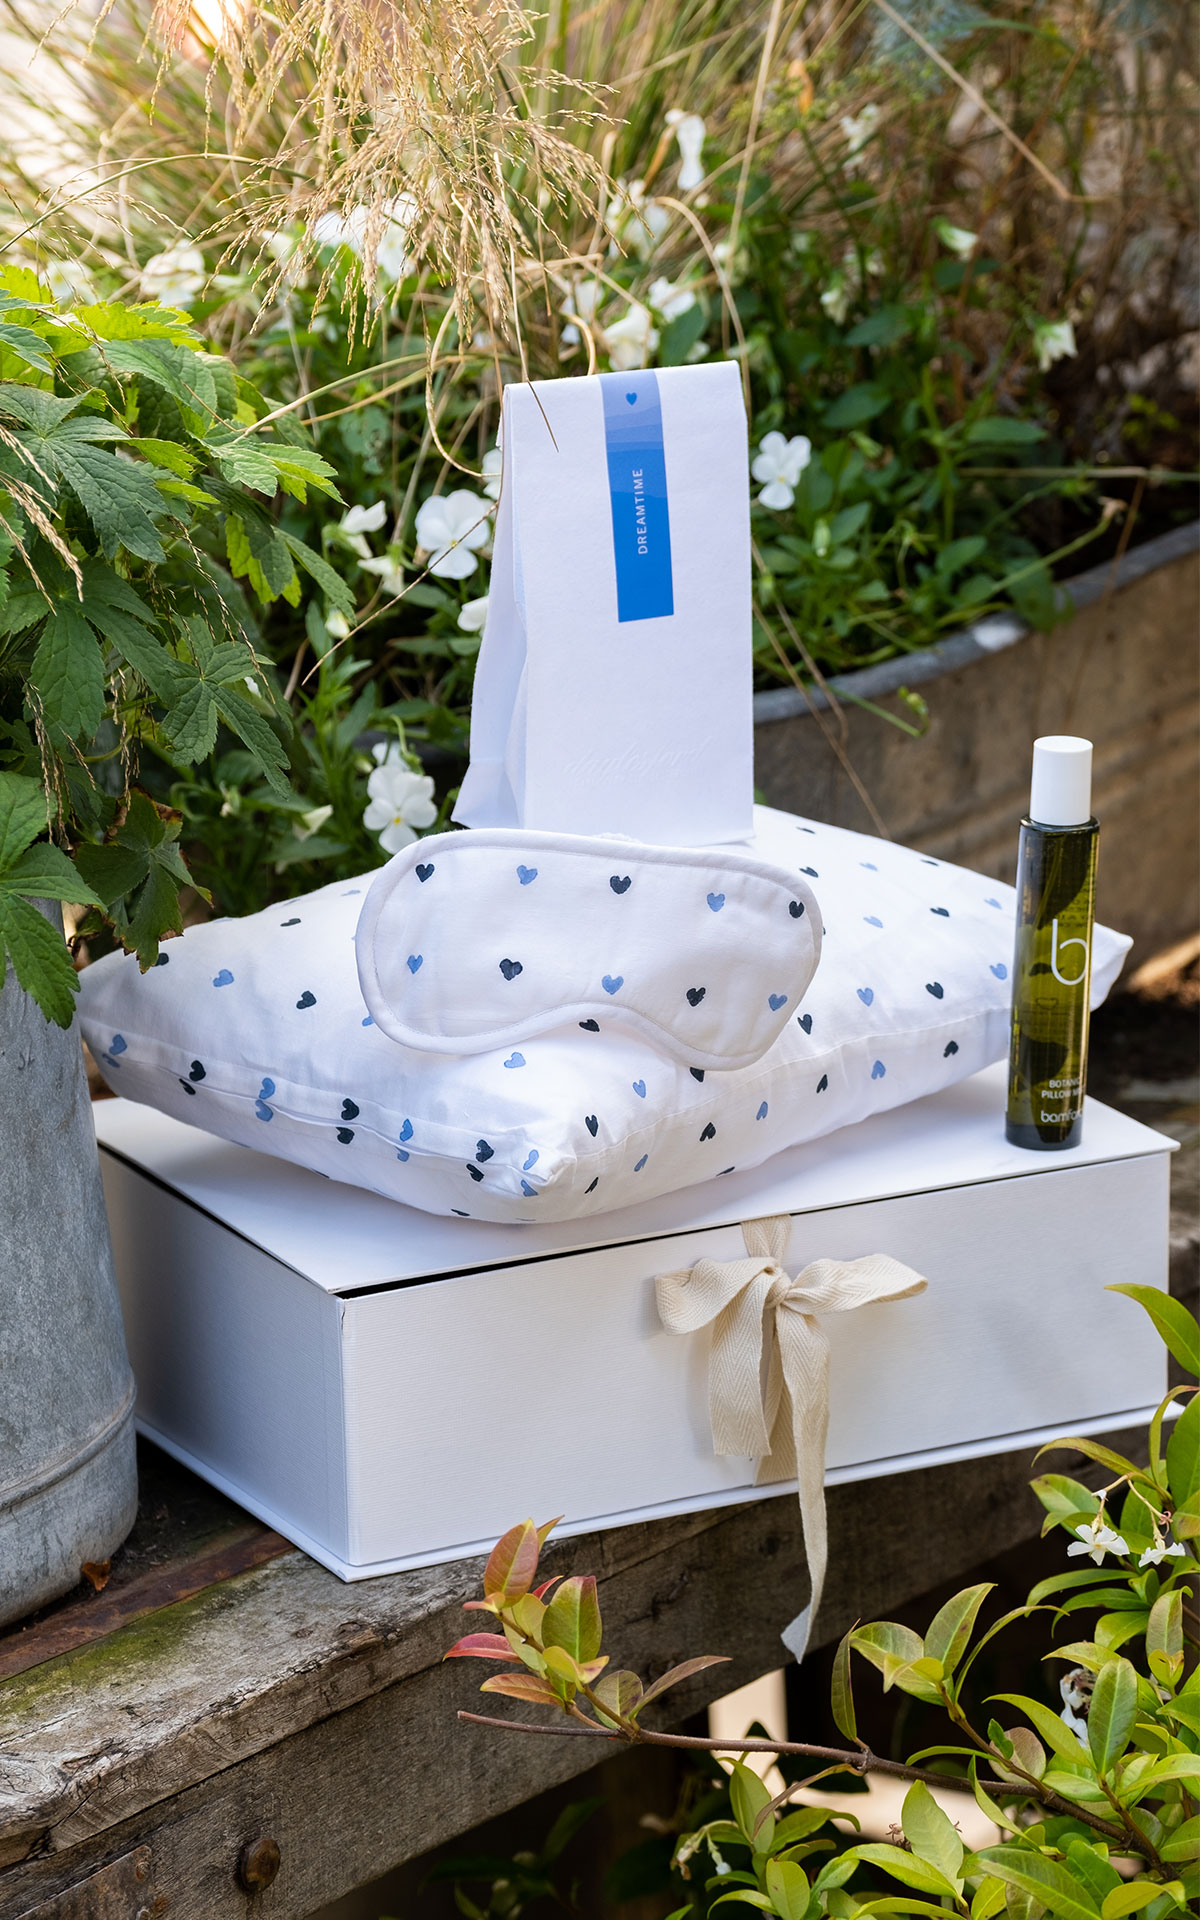 Bamford Sleep wellness set from Bicester Village